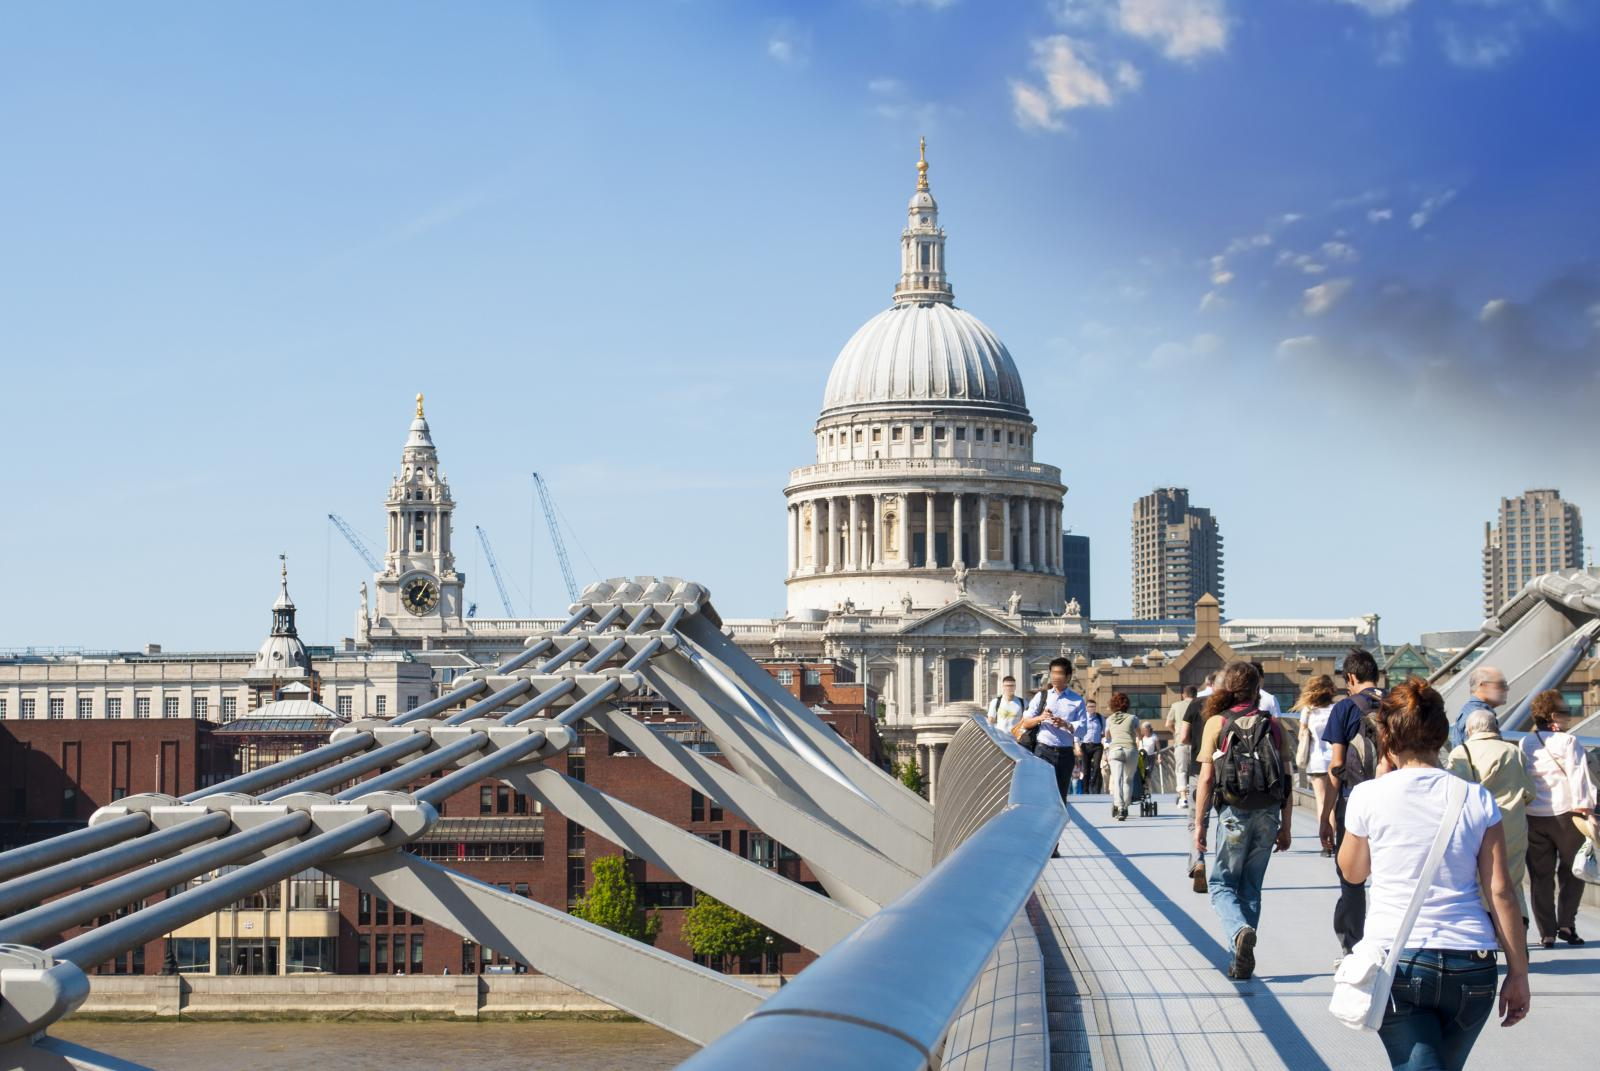 City of London – St Paul's Cathedral